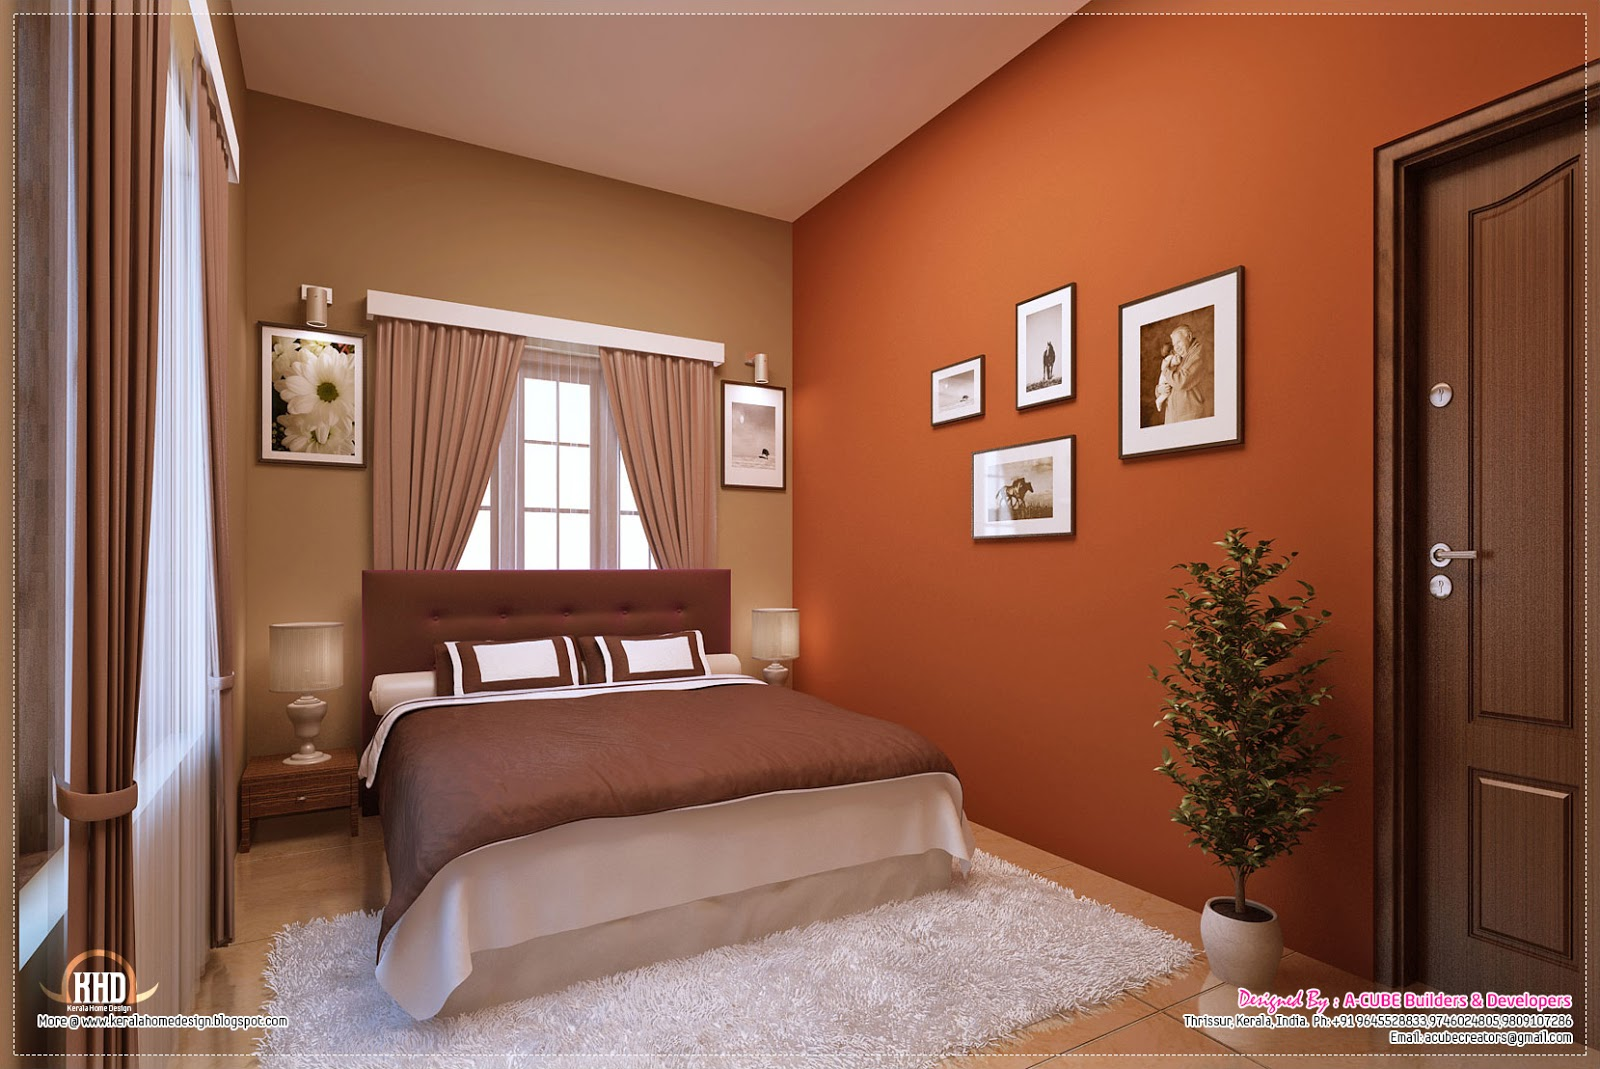 Awesome interior decoration ideas home kerala plans for Home inner decoration